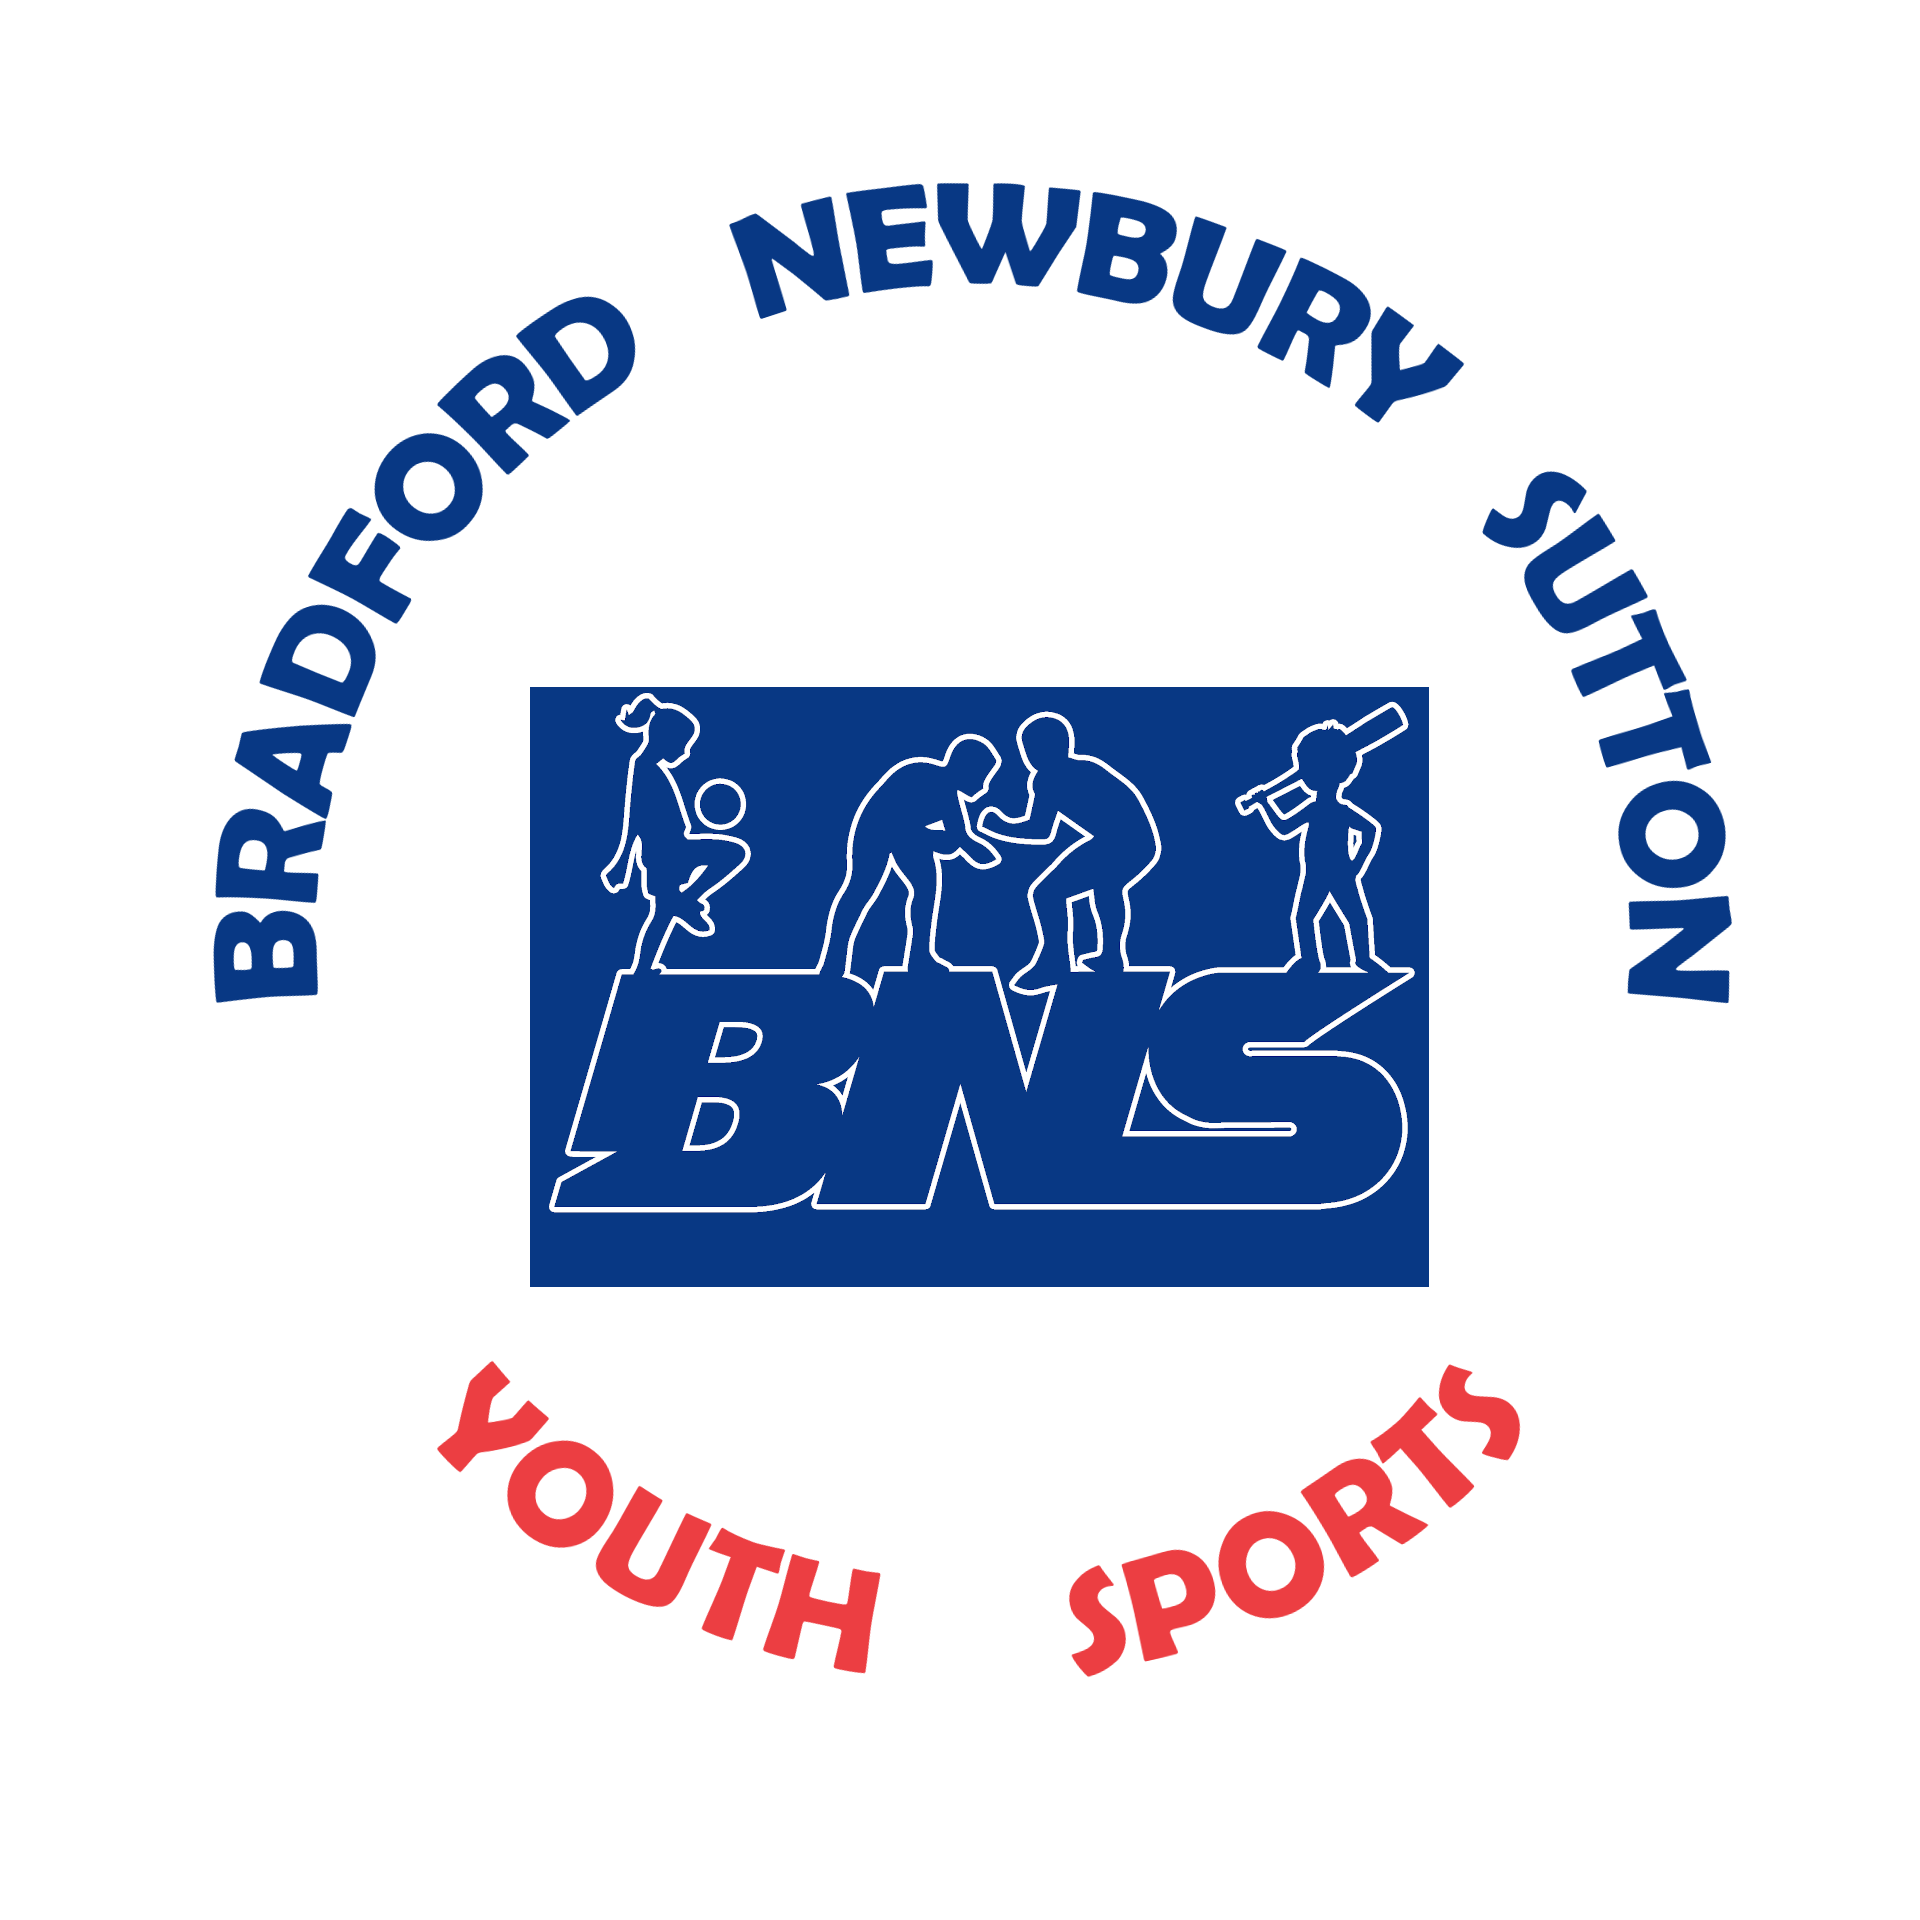 Bradford Newbury Sutton Youth Sports